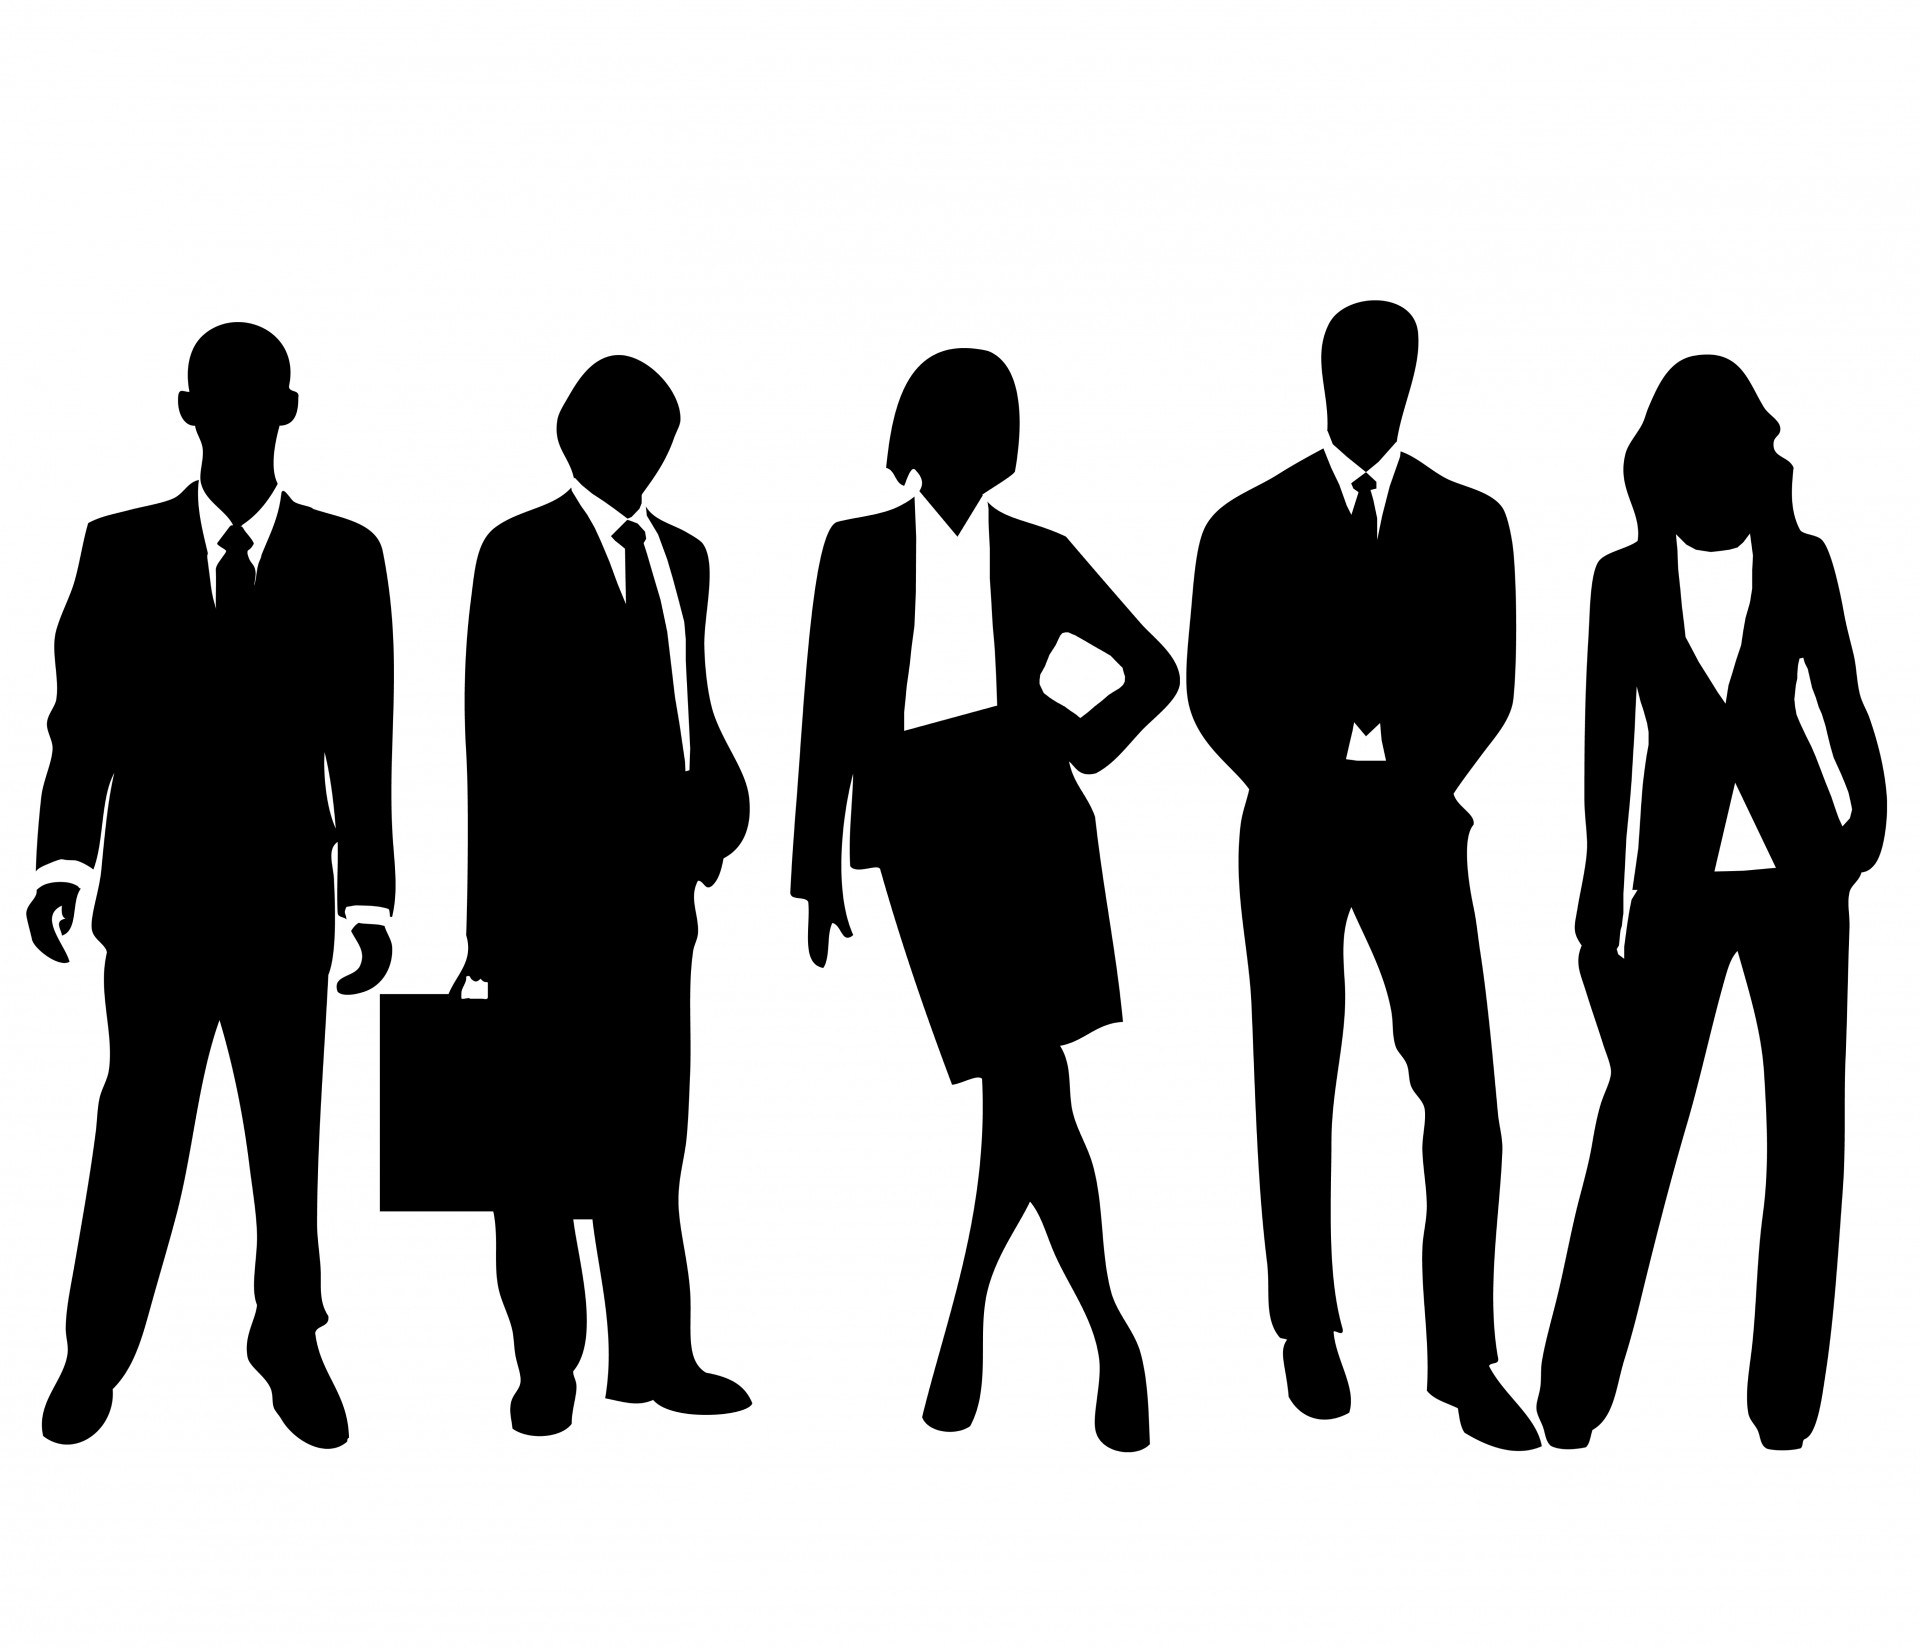 Business clipart business person #1